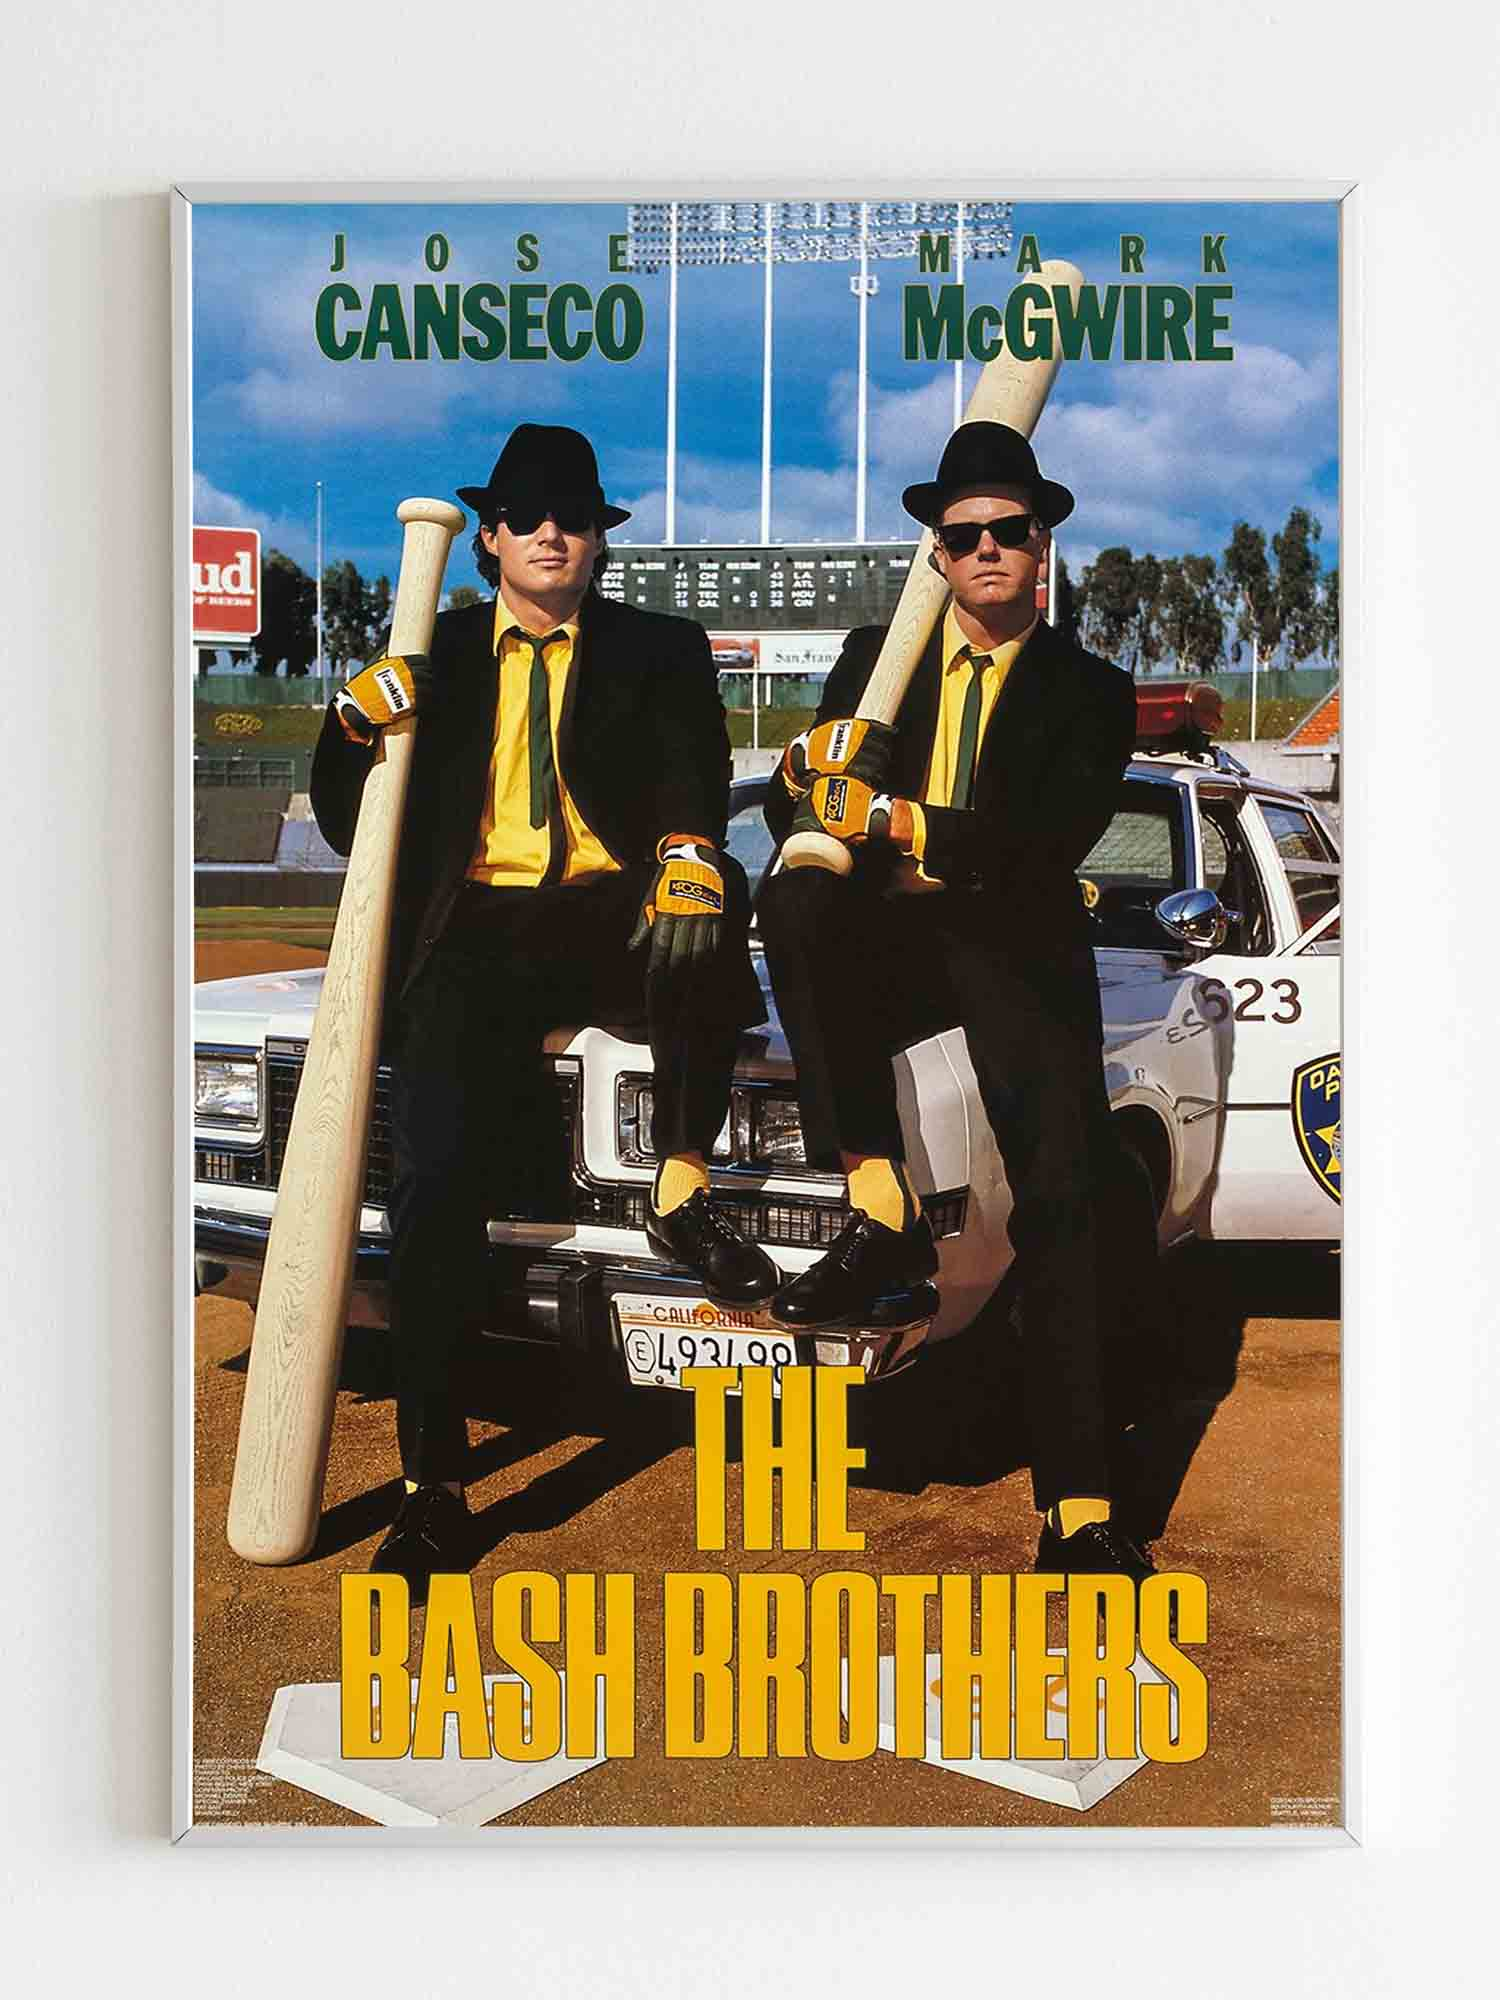 Jose Canseco & Mark Mcgwire 1988 Poster - Nuu Shirtz